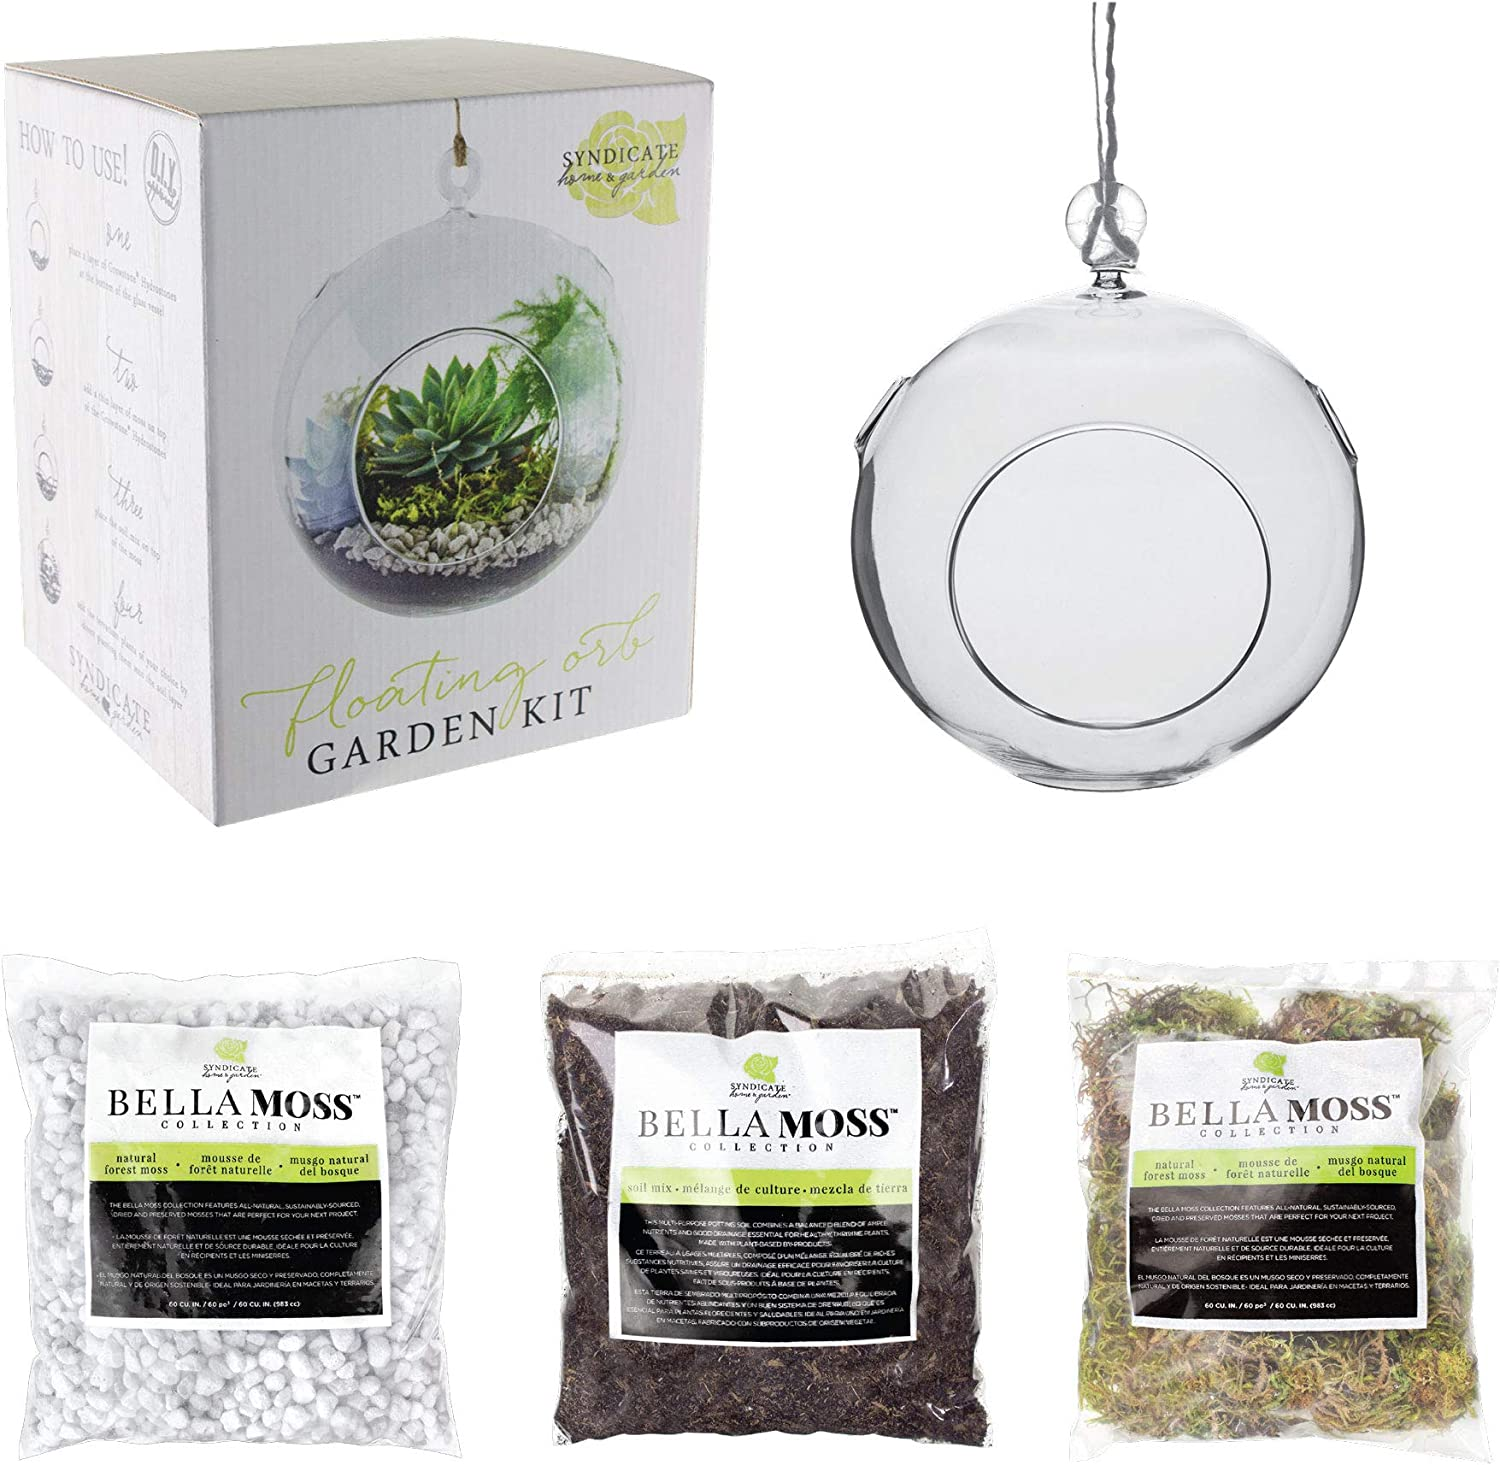 Syndicate Home & Garden Floating Orb Garden Kit, Includes Glass Container, Stone, Soil and Moss